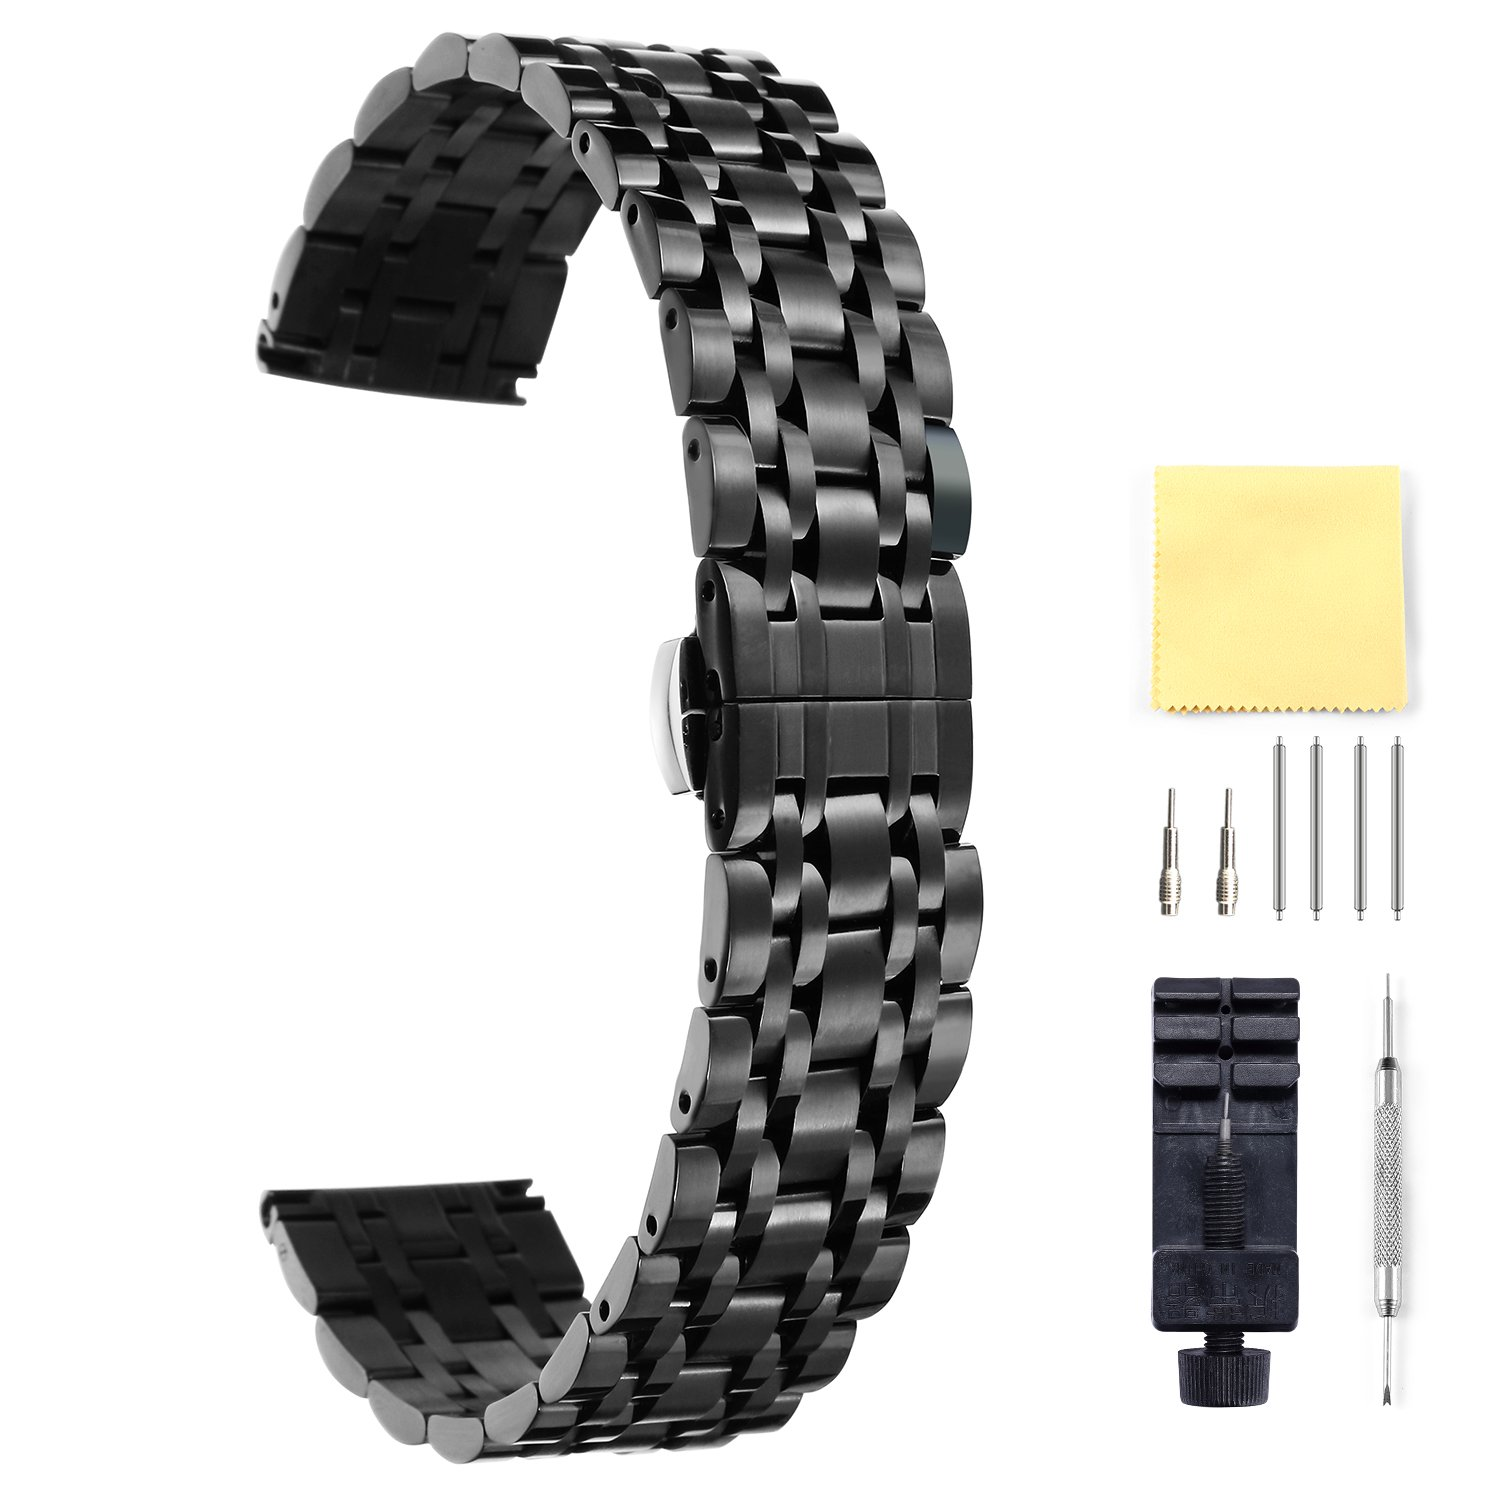 BINLUN Stainless Steel Watch Band 6 Color(Gold Silver Black Rose Gold Gold Tone Rose Gold Tone) 17 Size (10mm - 26mm)